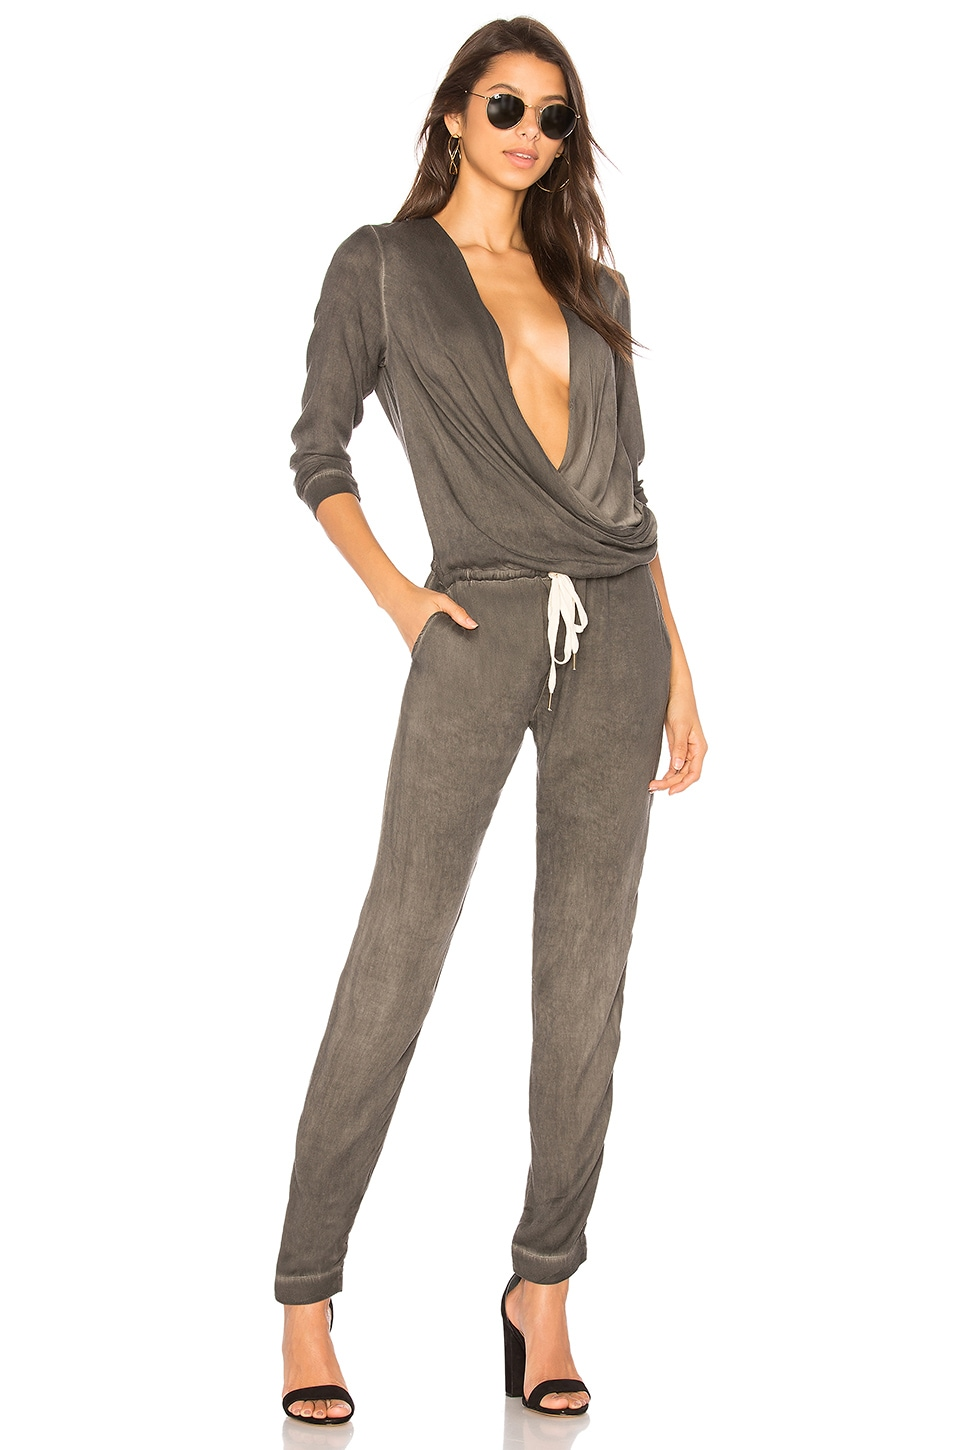 Zander Jumpsuit by Young, Fabulous & Broke